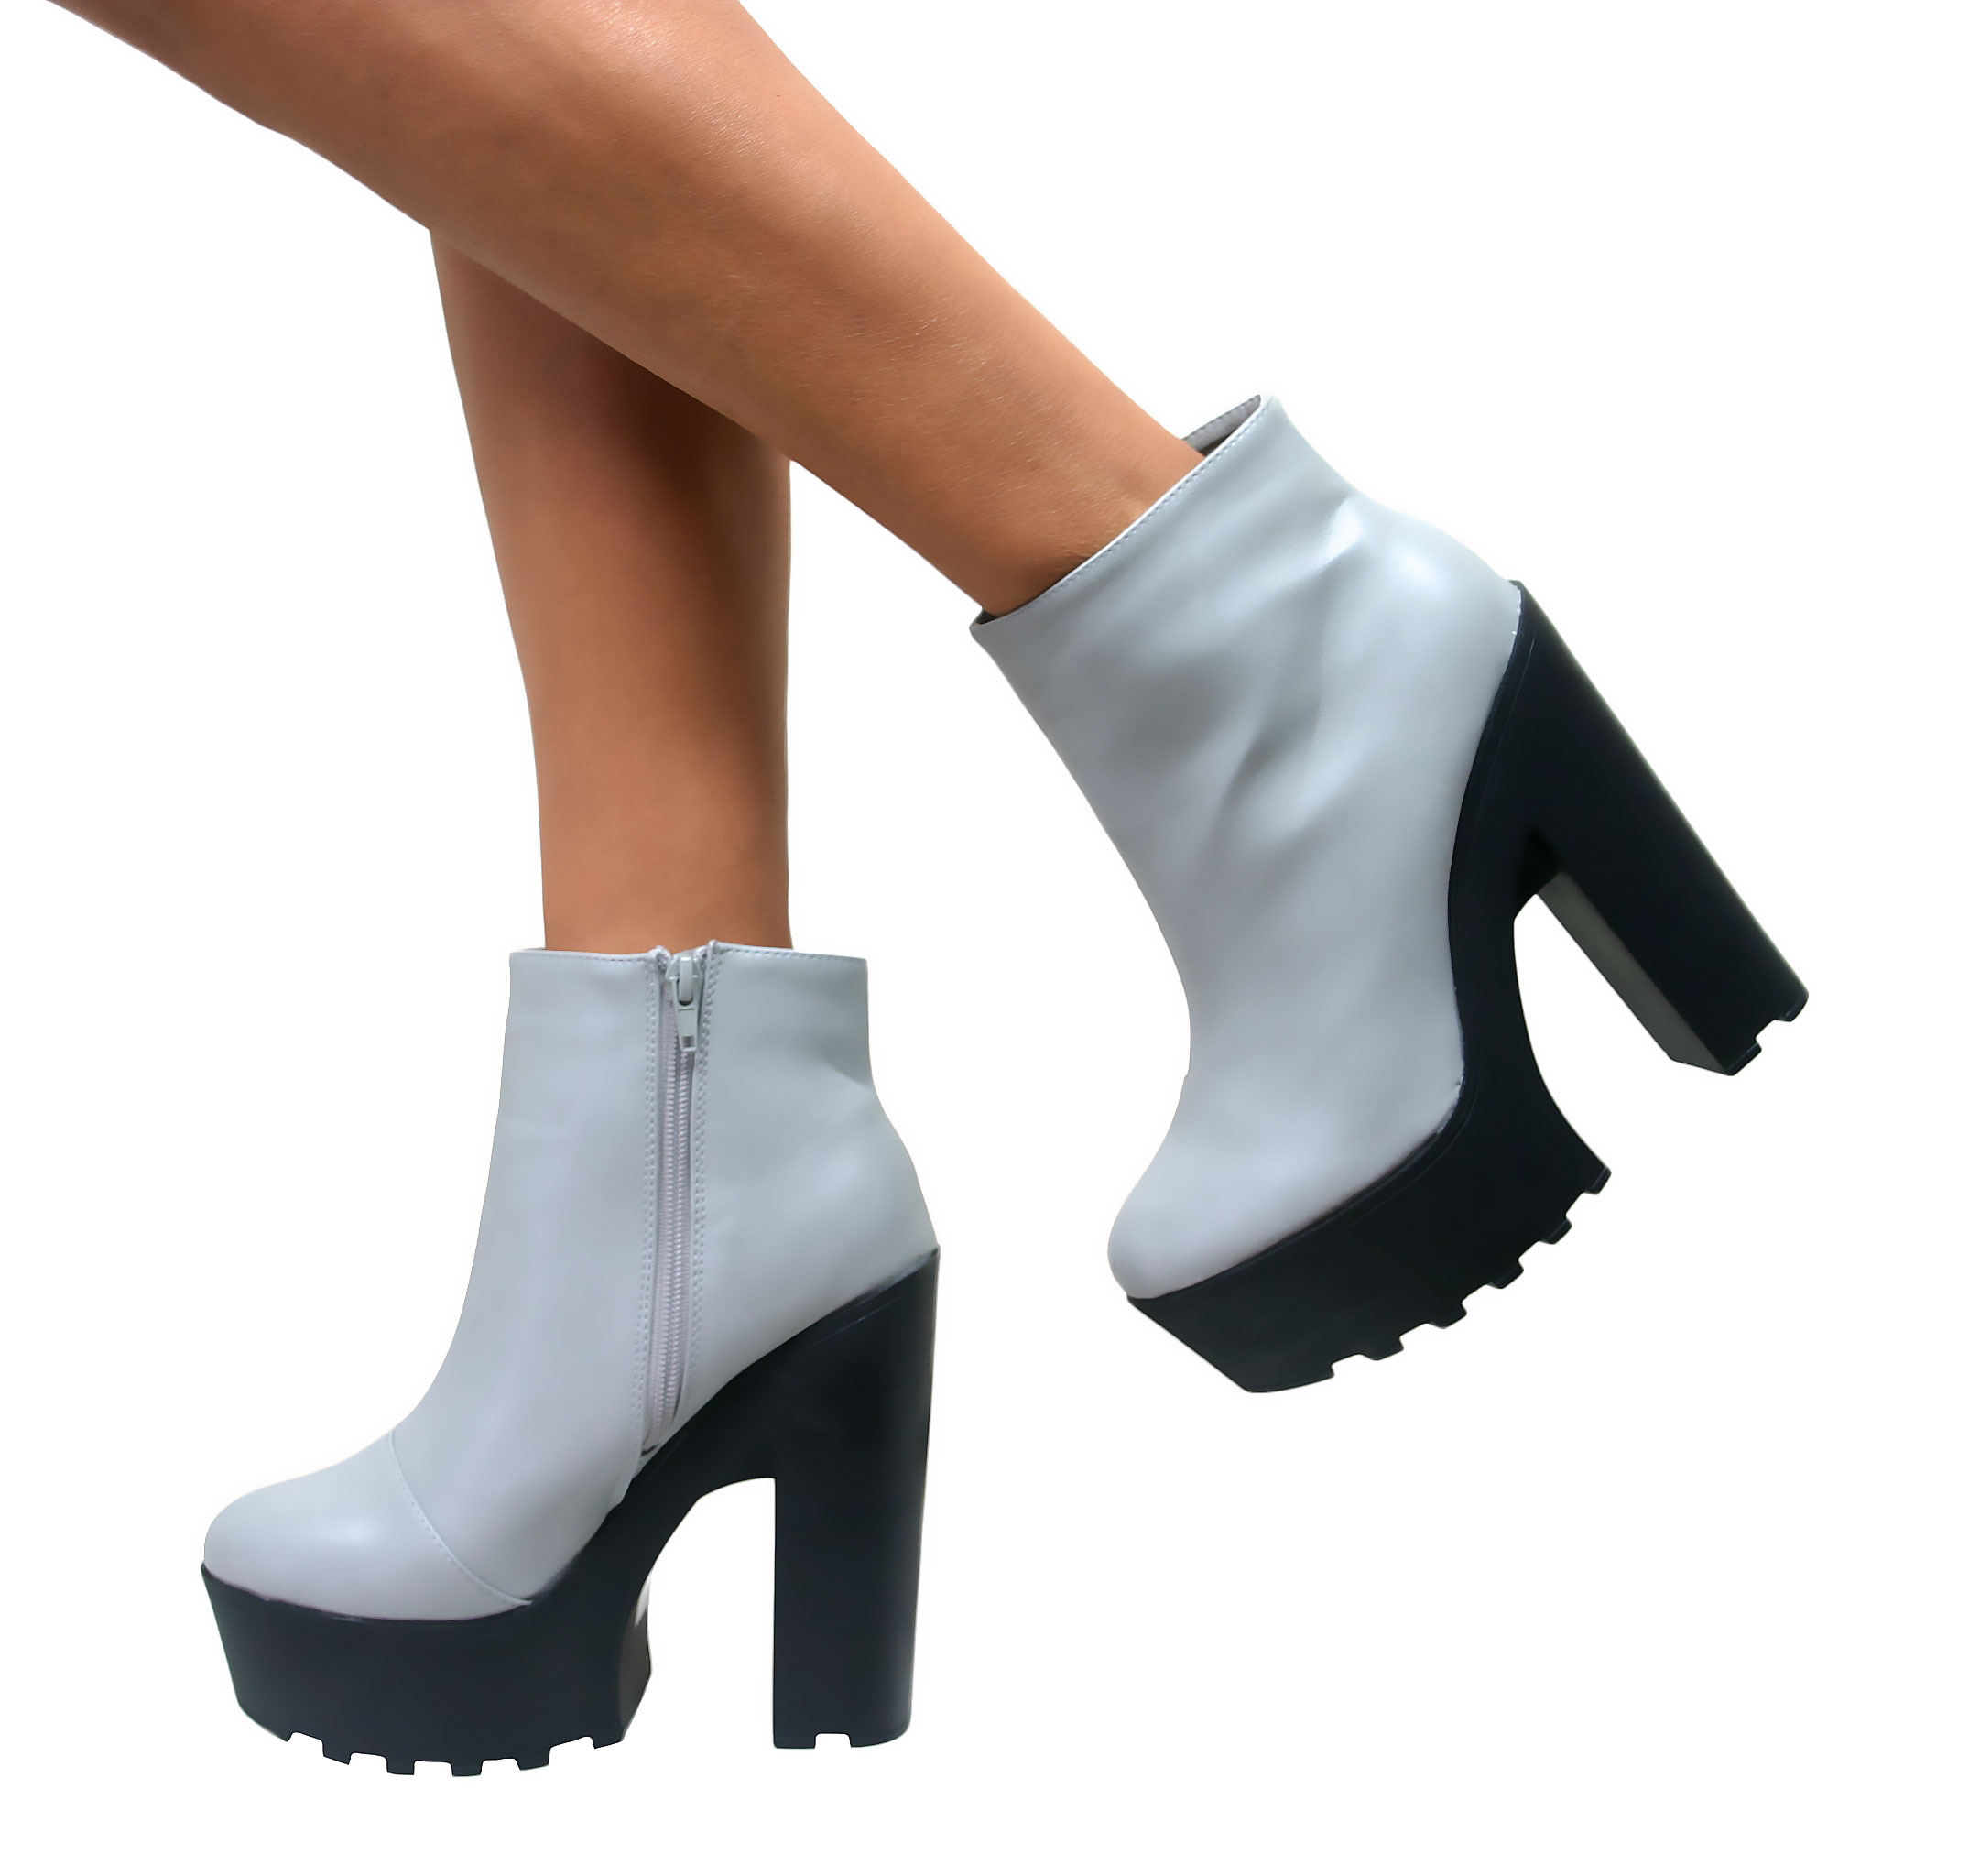 WOMENS CLEATED SOLE CHUNKY HIGH HEEL ZIP UP PLATFORM BOOTS GOTH ...